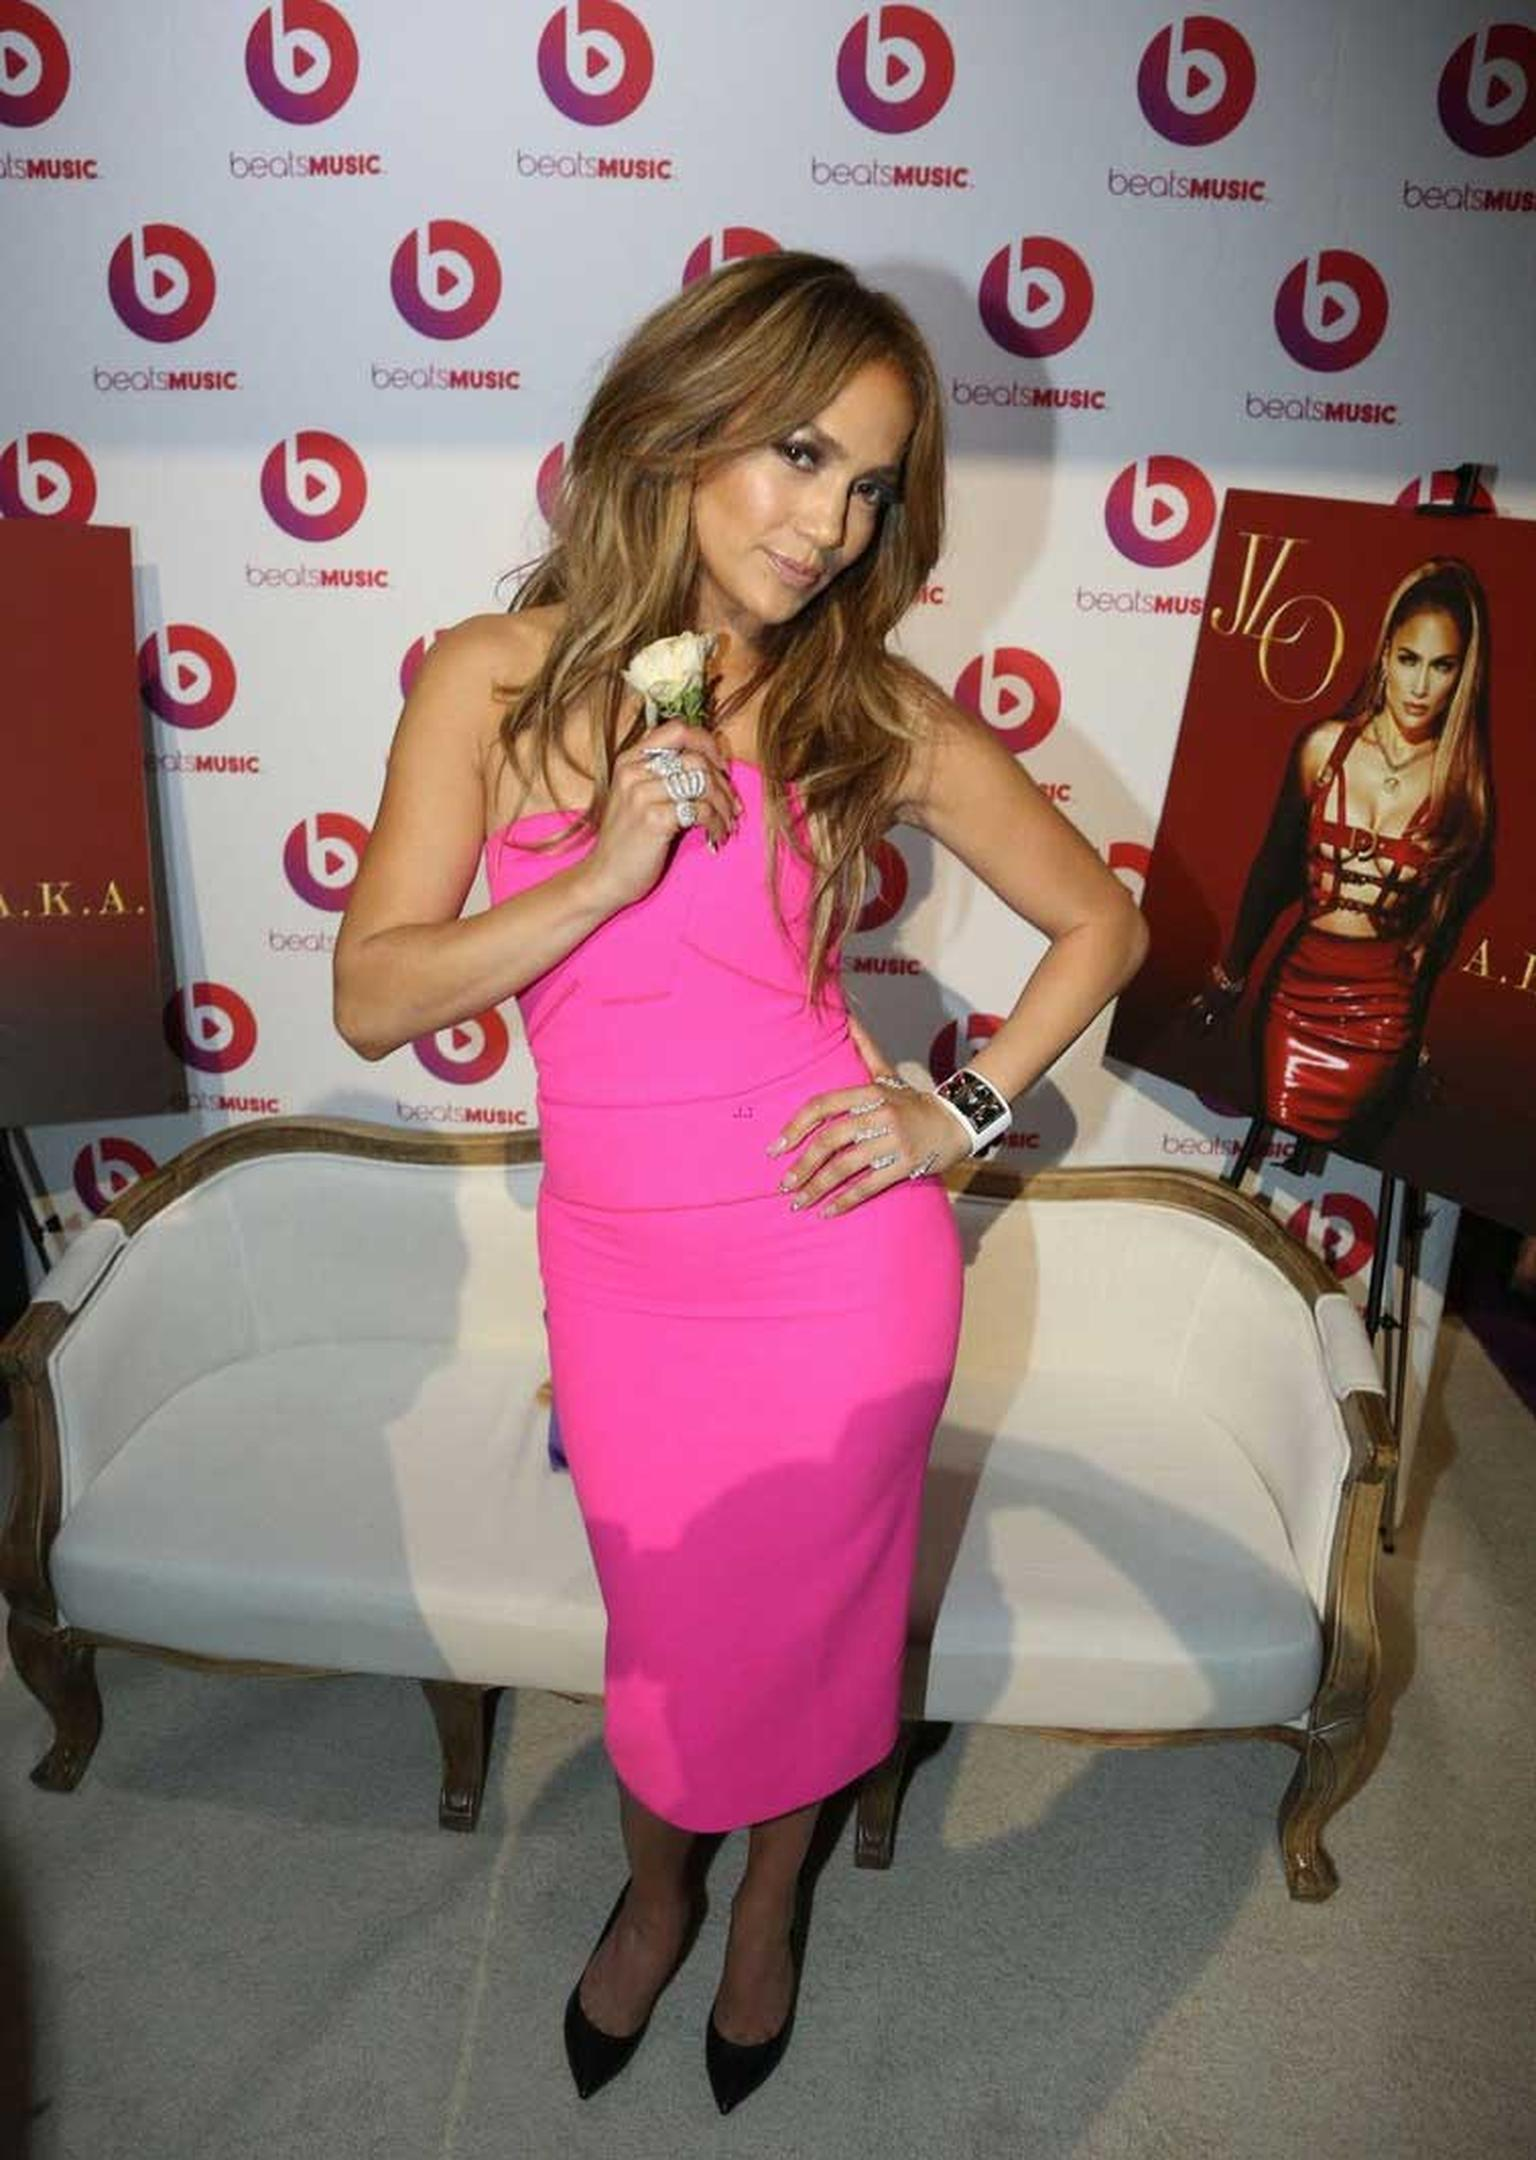 On Tuesday, J.Lo attended the launch party of her new album, A.K.A., in NYC wearing a diamond Carla Amorim ring.